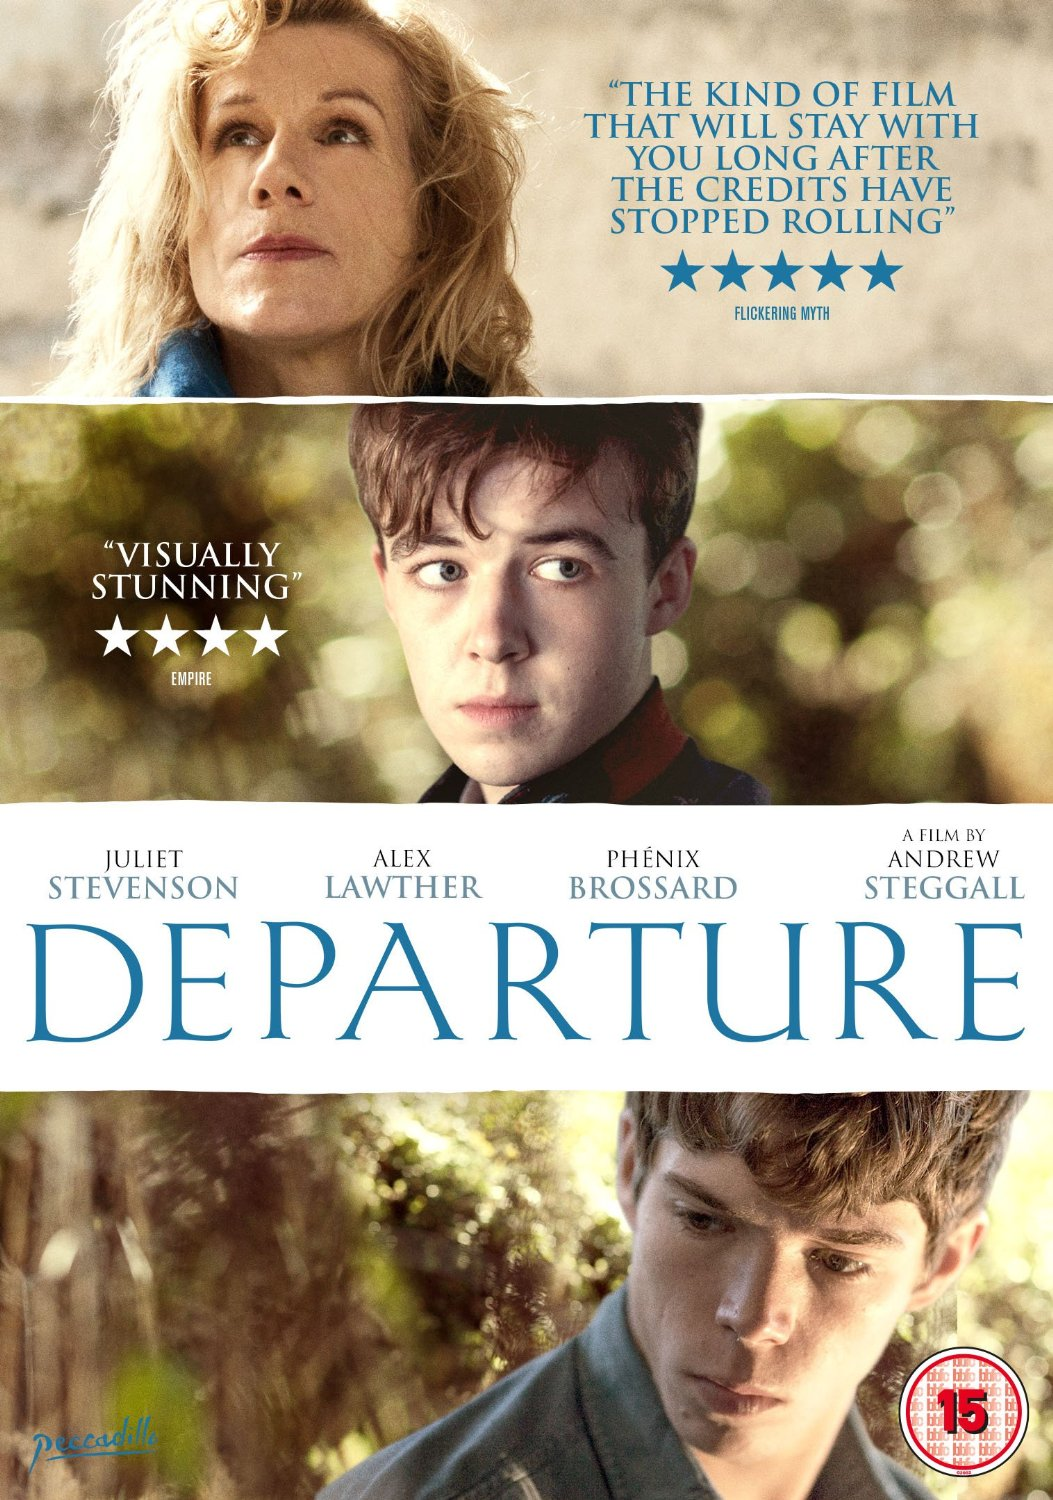 Pre-order Departure DVD on Amazon